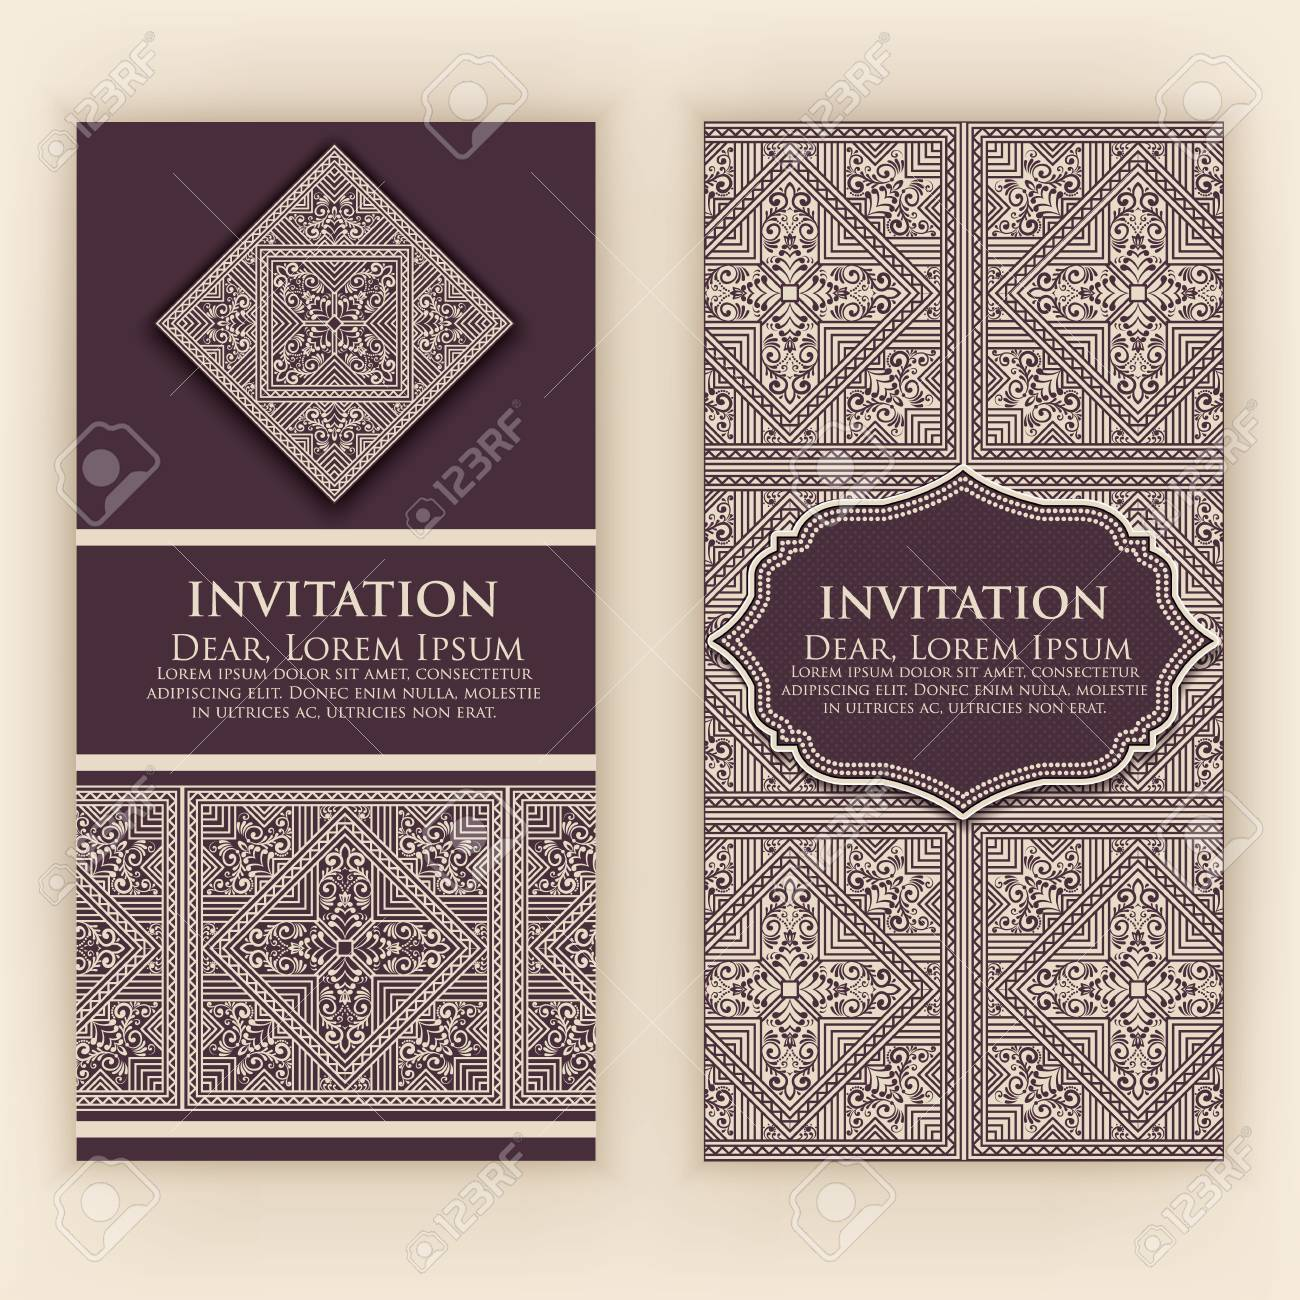 Vector invitation cards with ethnic arabesque elements arabesque imagens vector invitation cards with ethnic arabesque elements arabesque style design elegant floral abstract ornaments front and back side of card stopboris Gallery